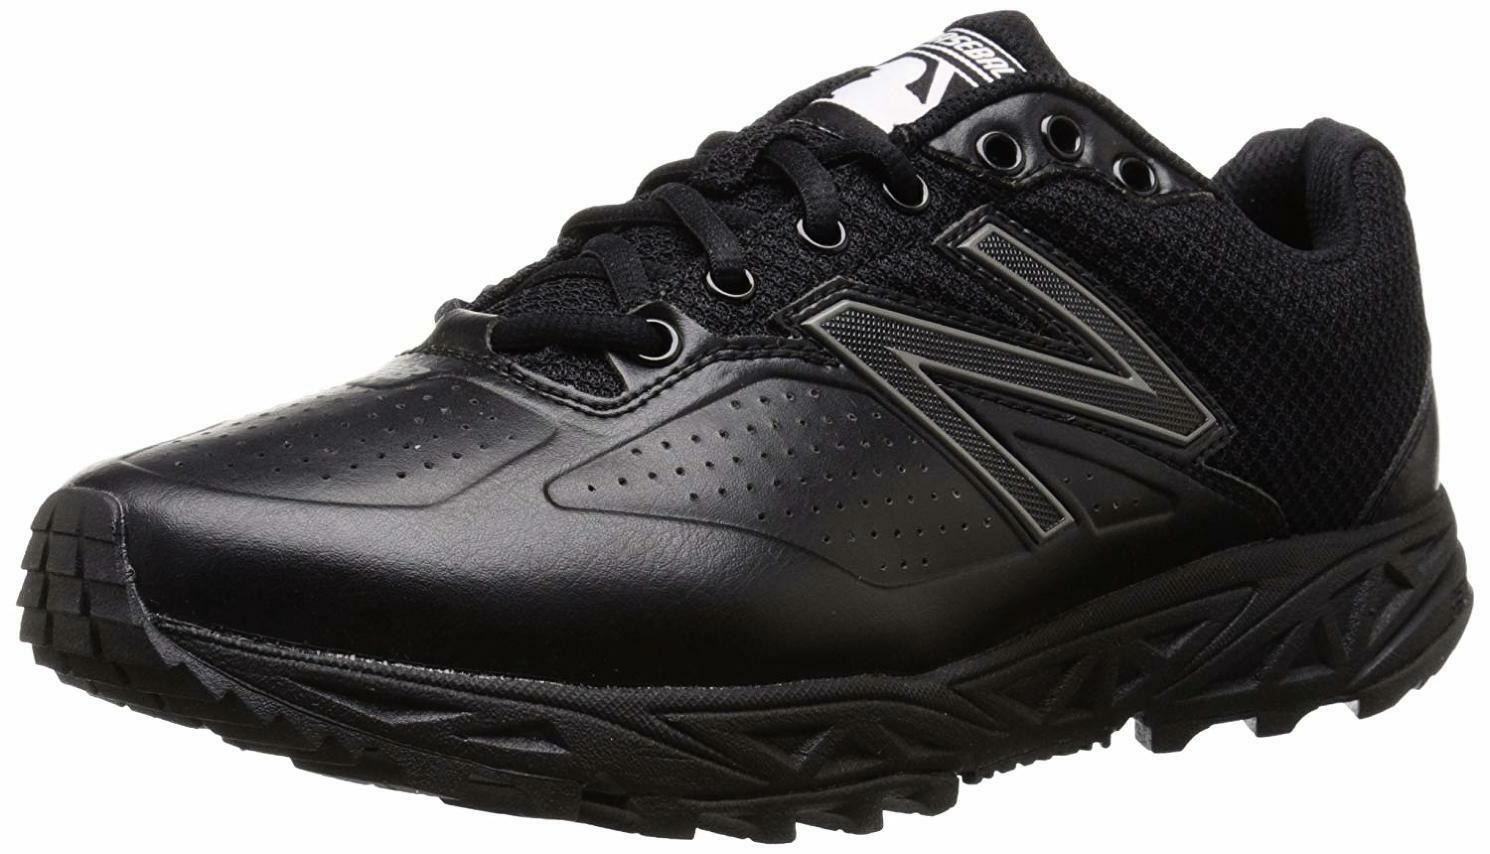 New Balance Homme MU950V2 Umpire Low Chaussures - Choose SZ/Color